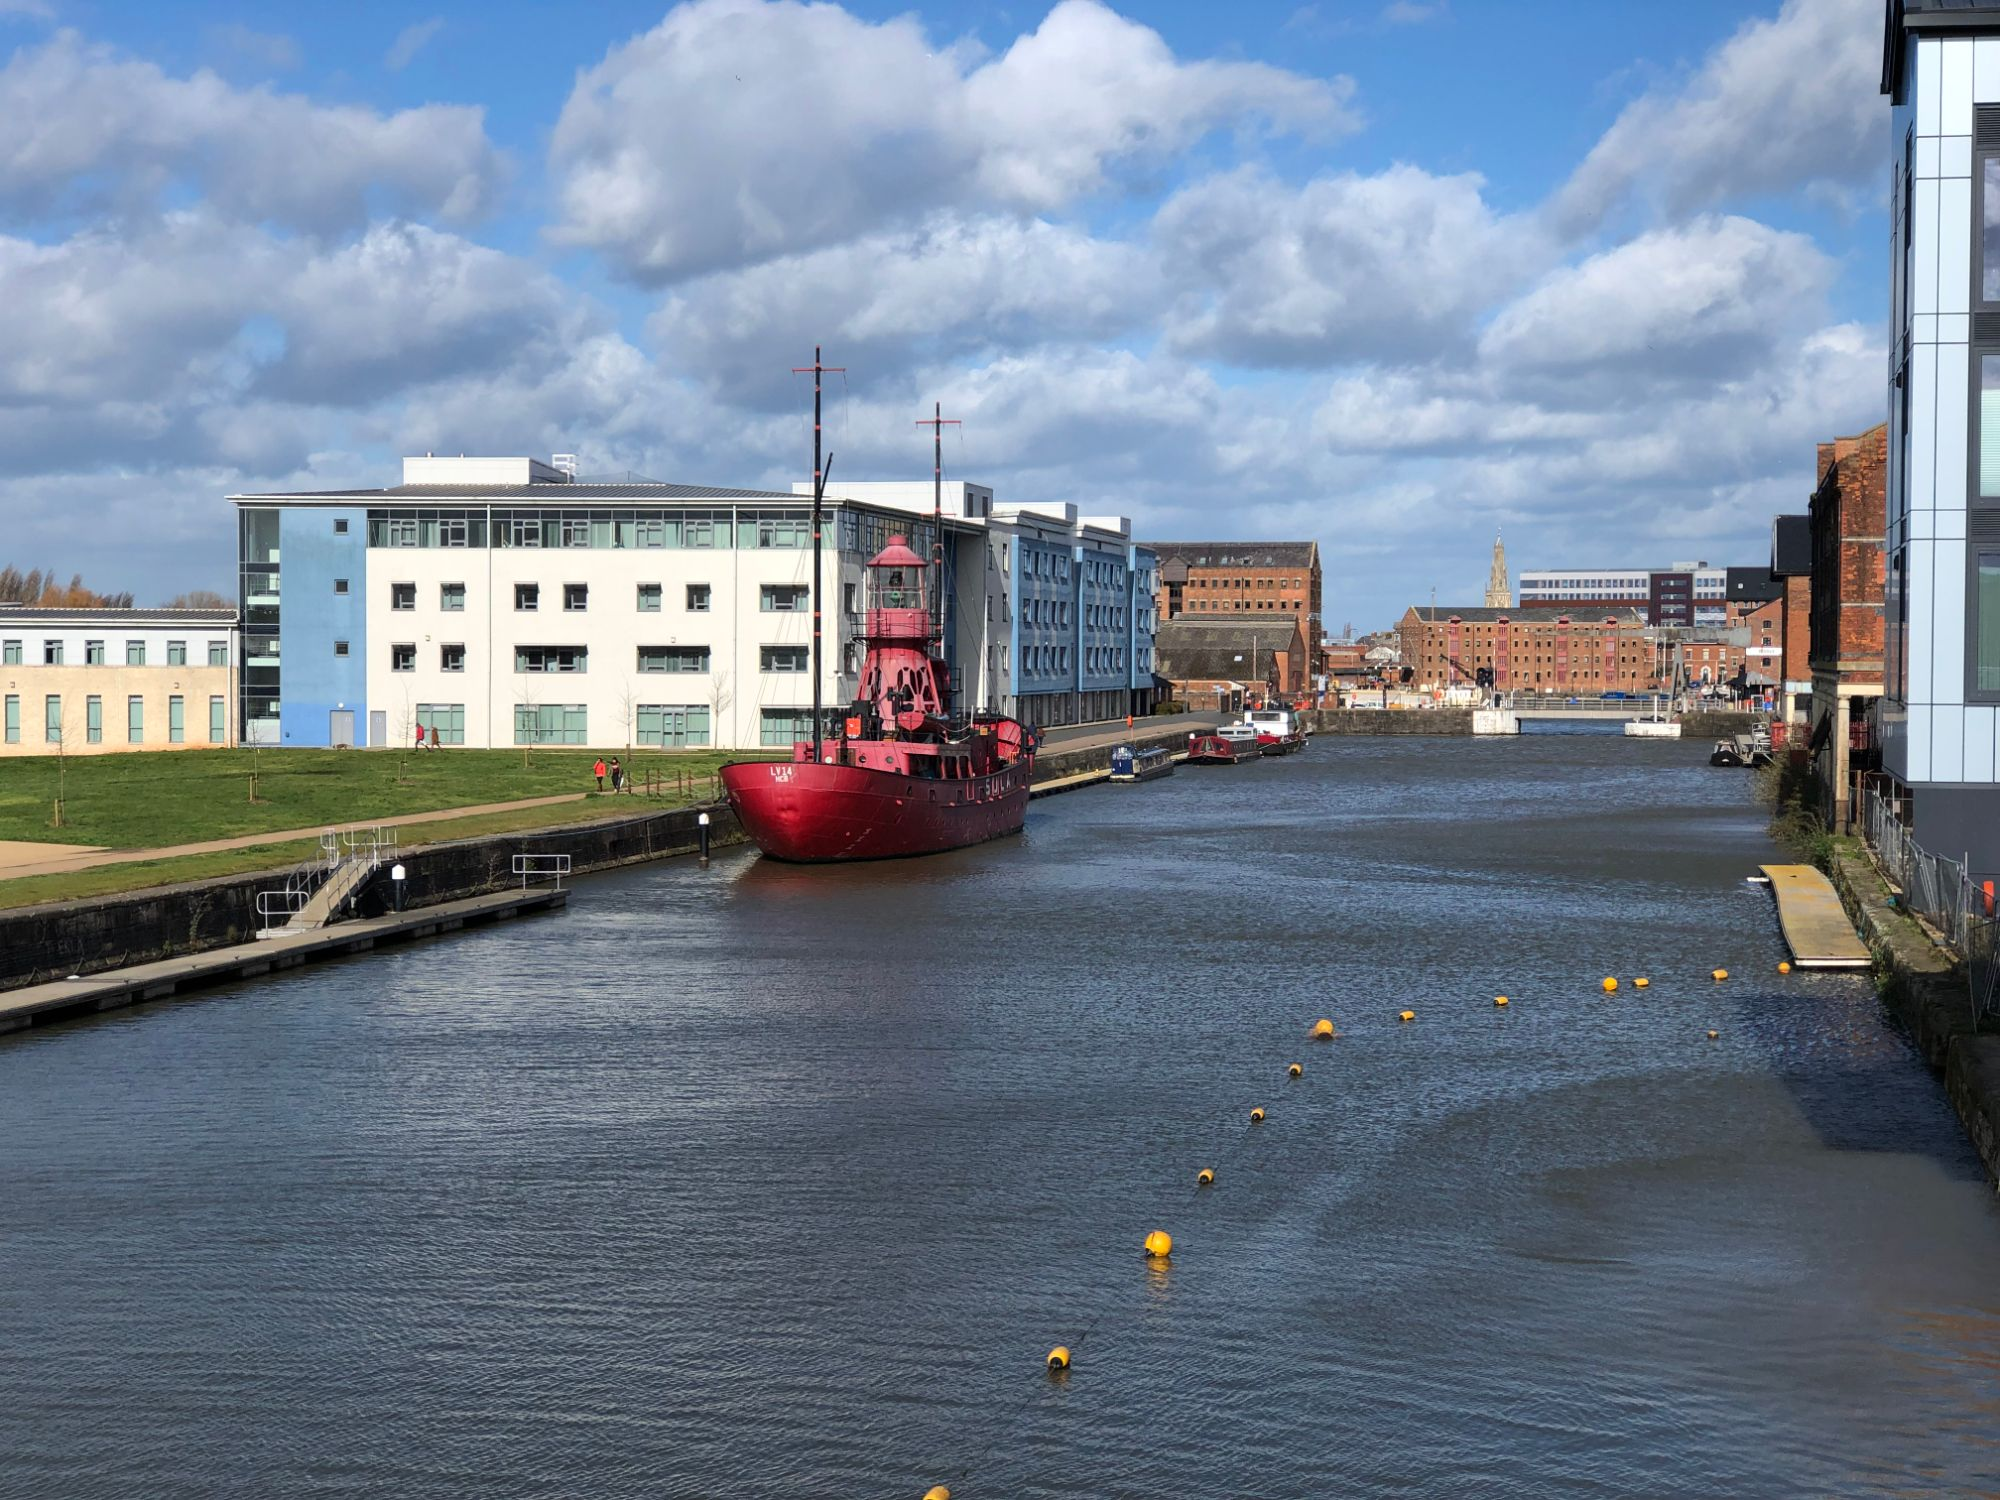 Free stock photo Gloucester Docks canal red lighthouse boat